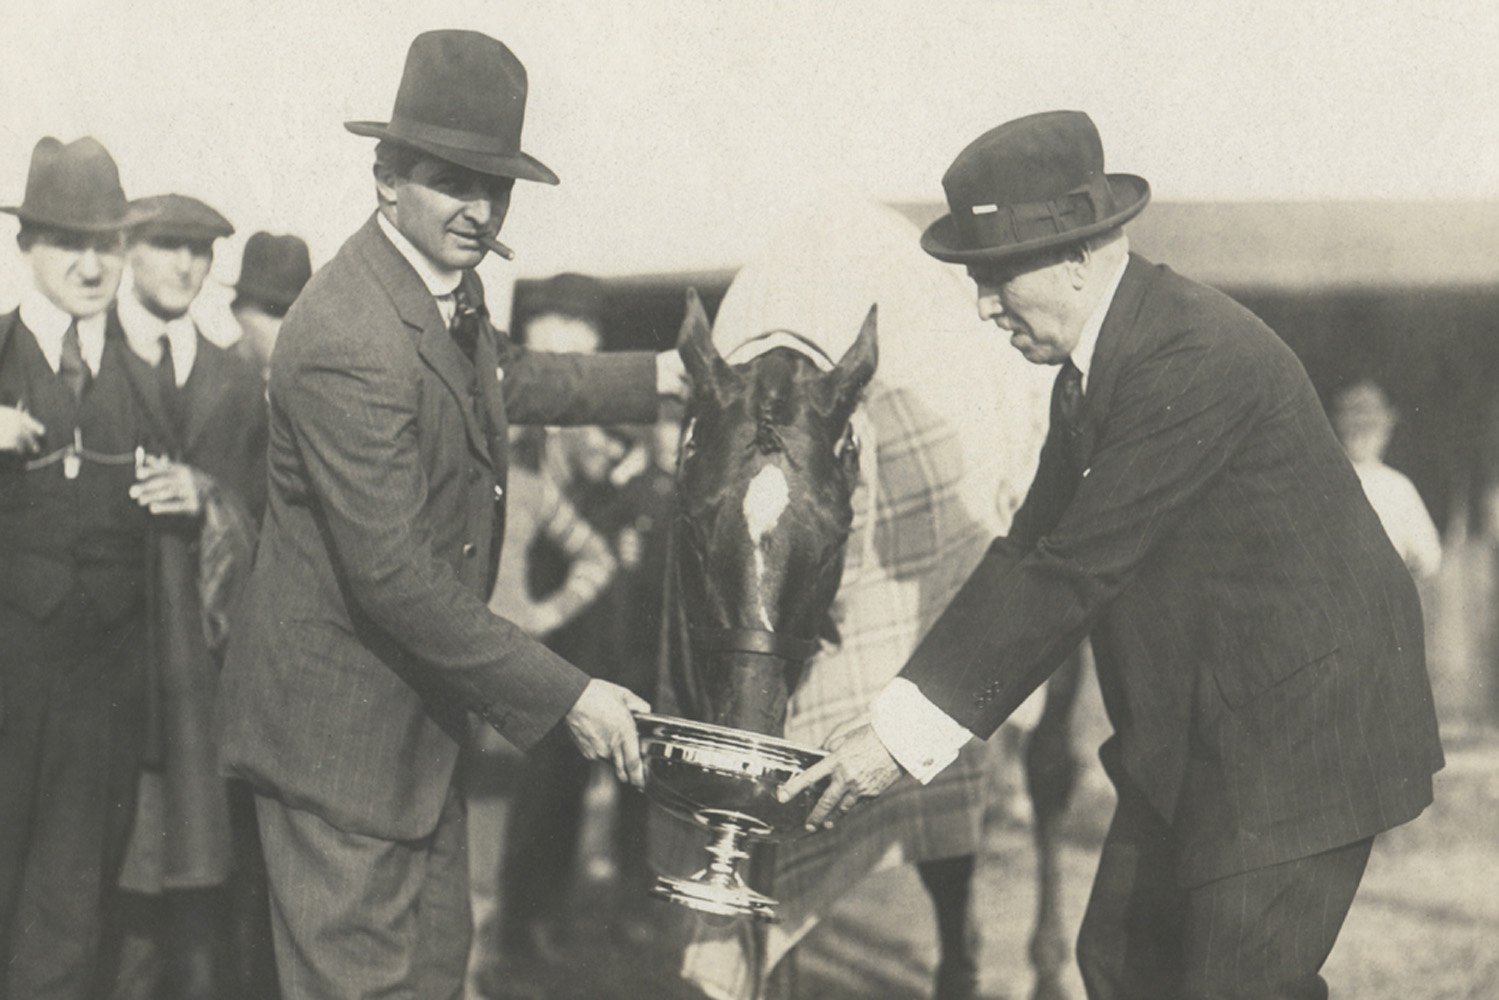 Man o' War celebrates winning his final career race with trainer Louis Feustel and owner Samuel Riddle by drinking from the Kenilworth Gold Cup trophy after defeating Sir Barton (Museum Collection)